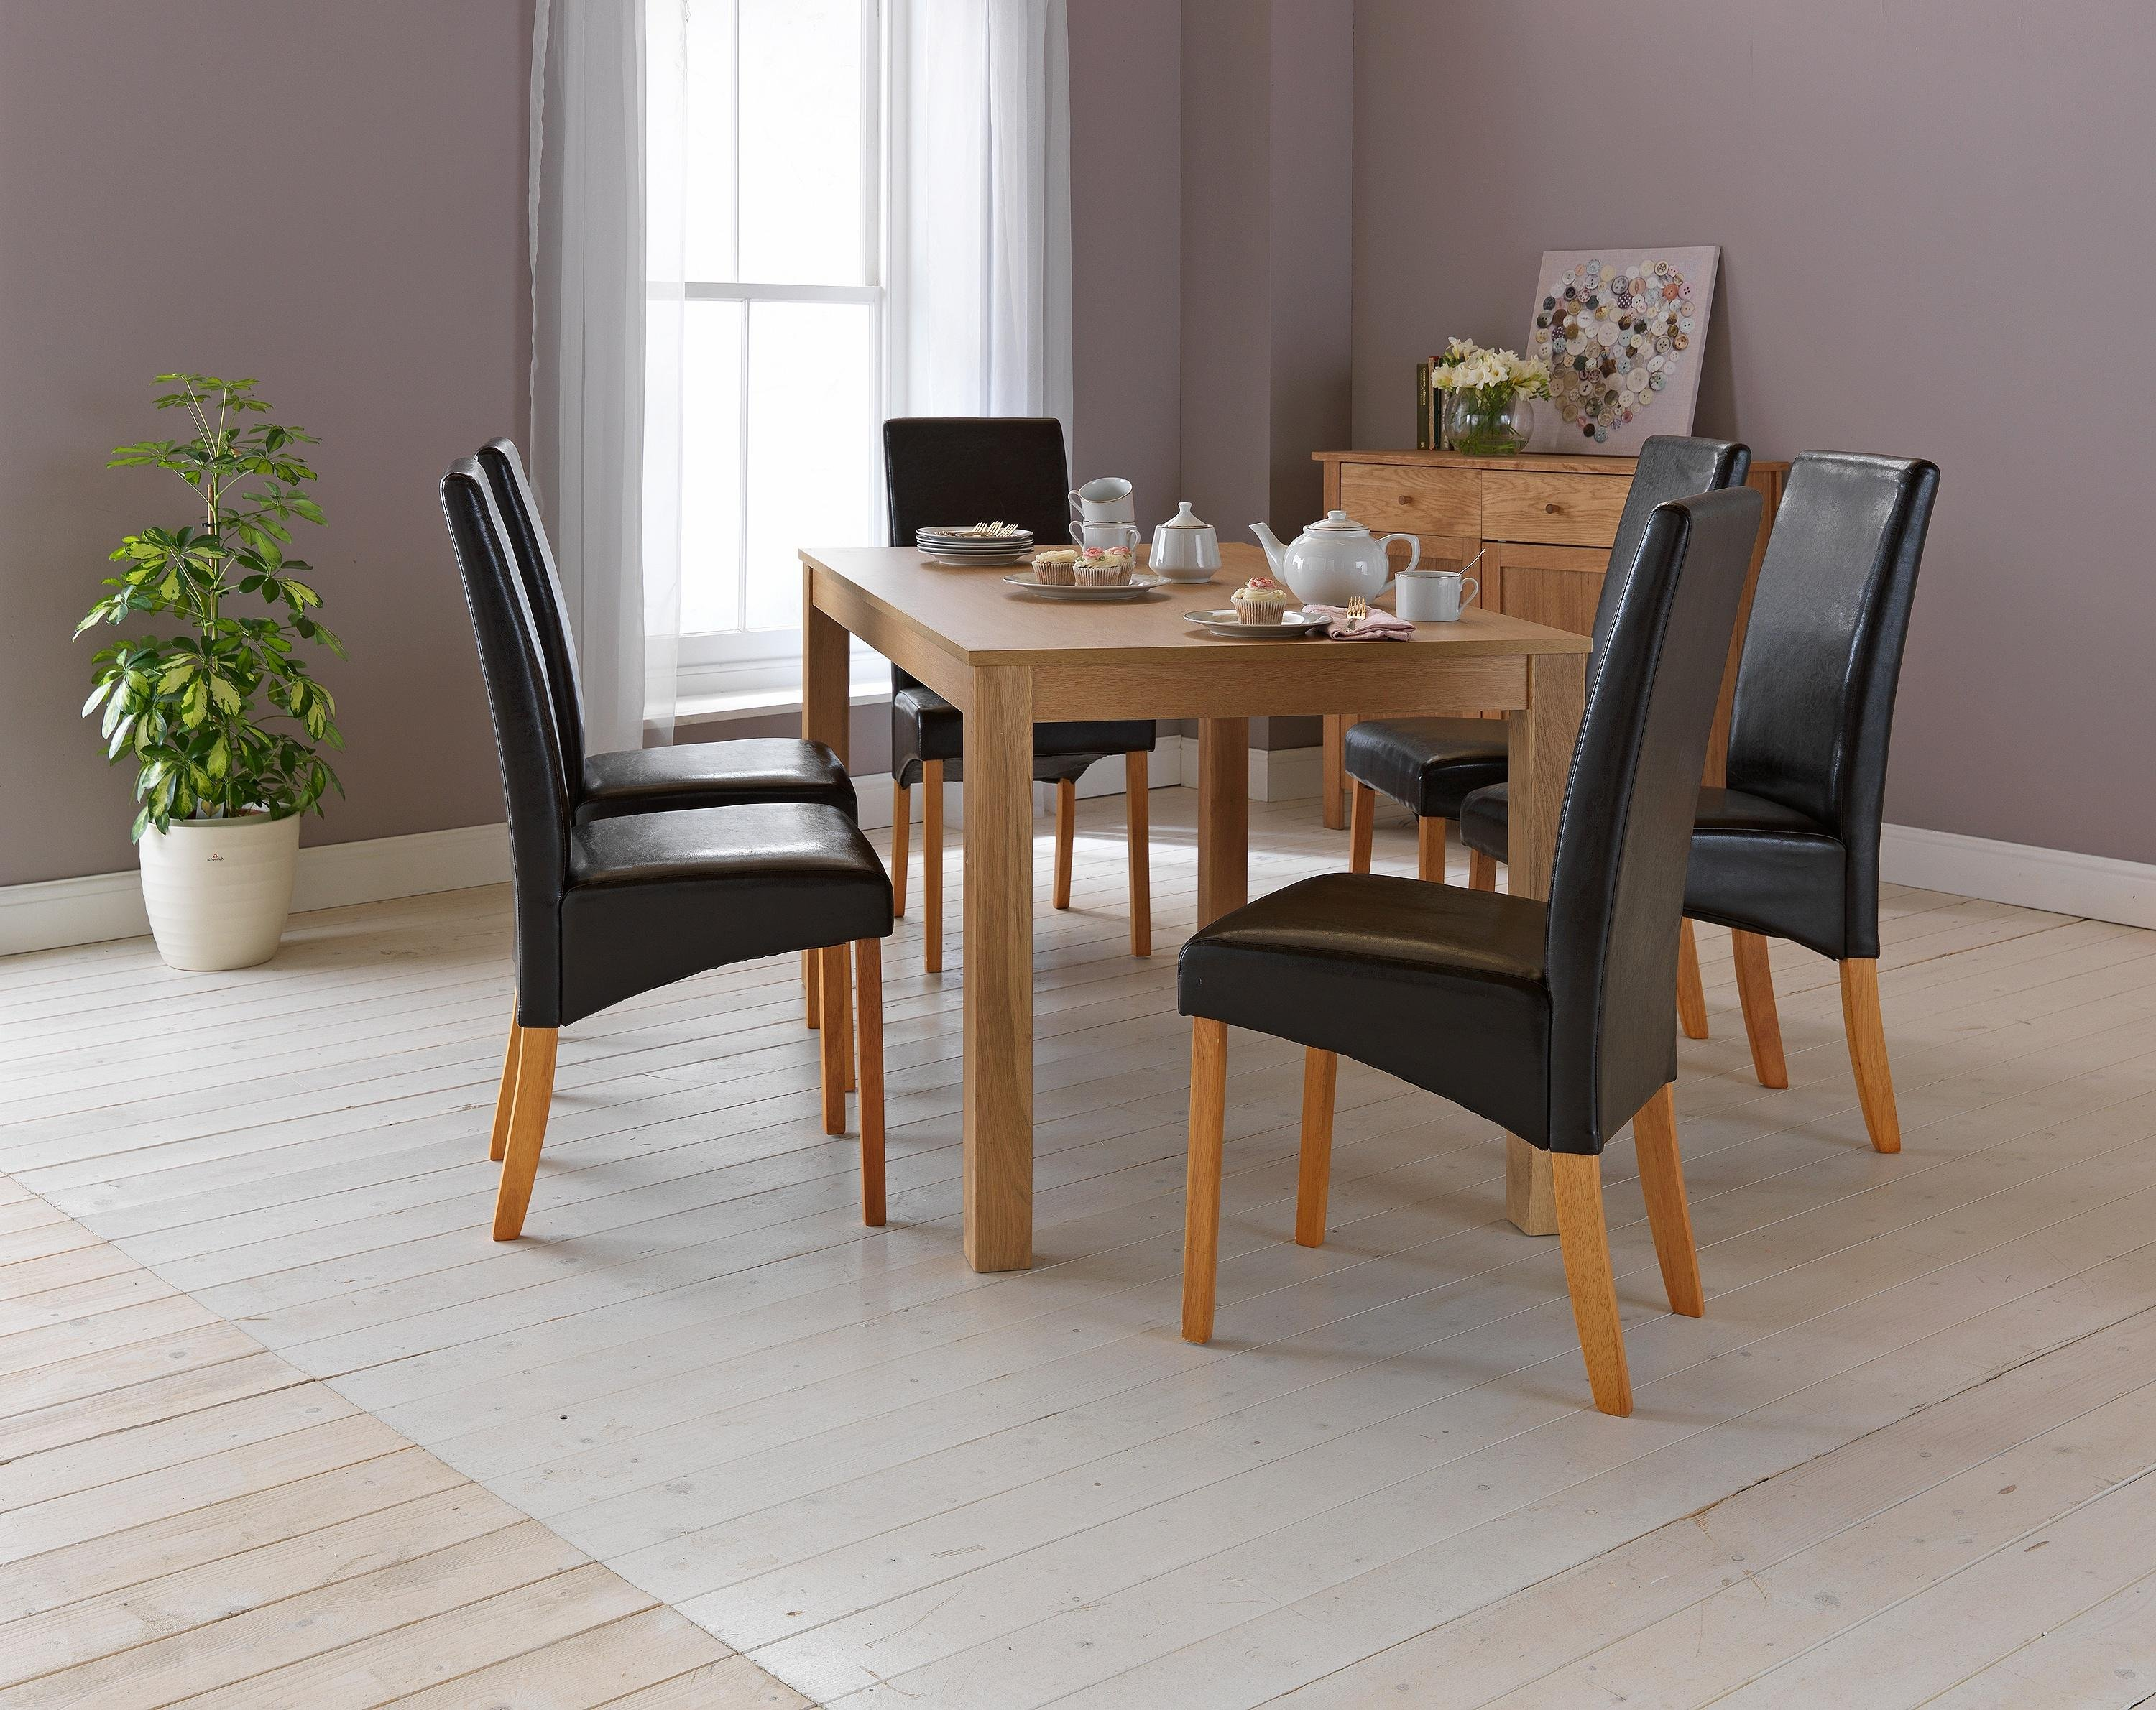 Buy HOME Bromham Oak Effect Dining Table   Chairs - Chocolate at